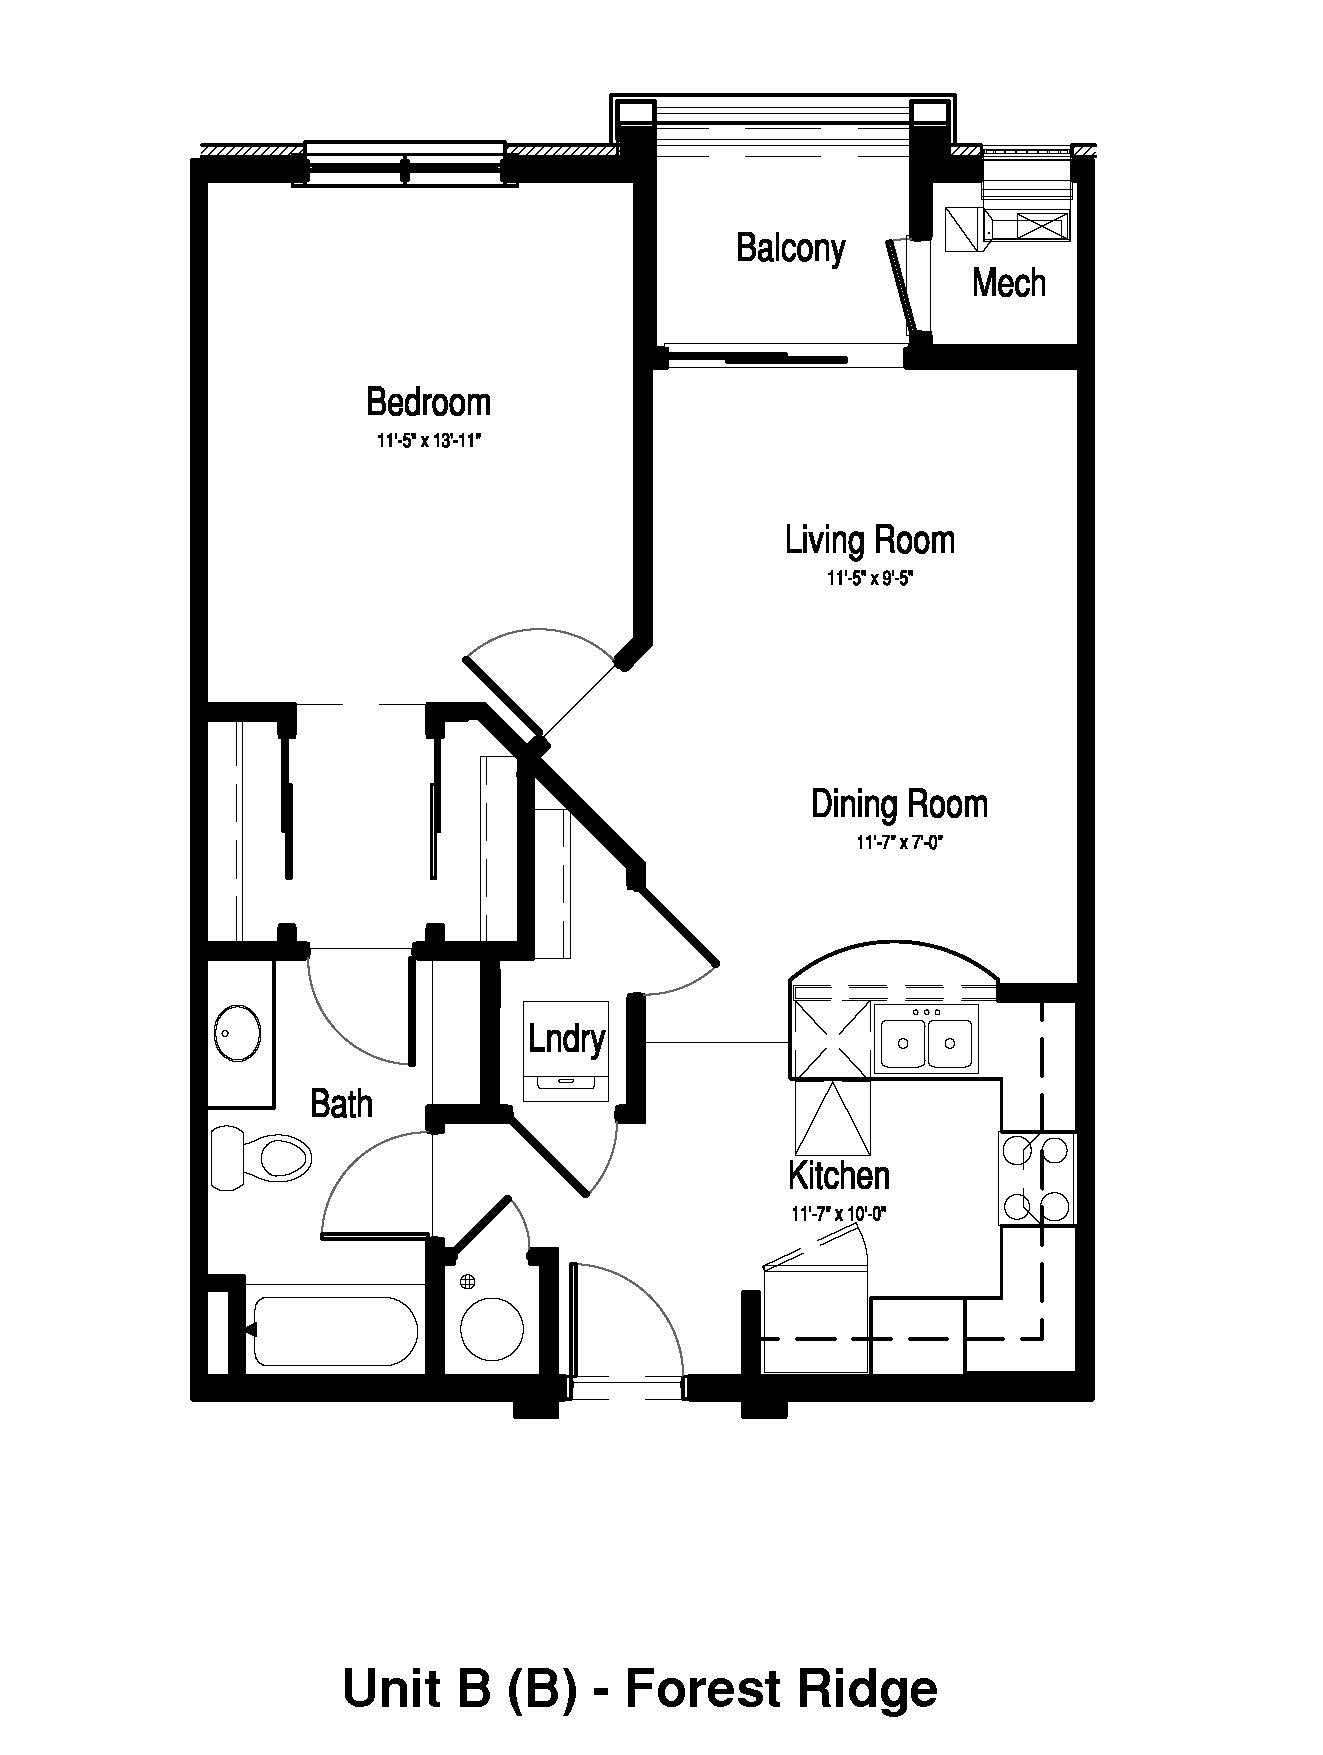 1 Bedroom, 1 Bath - 761 Sq. Ft. - Forest Ridge Expansion